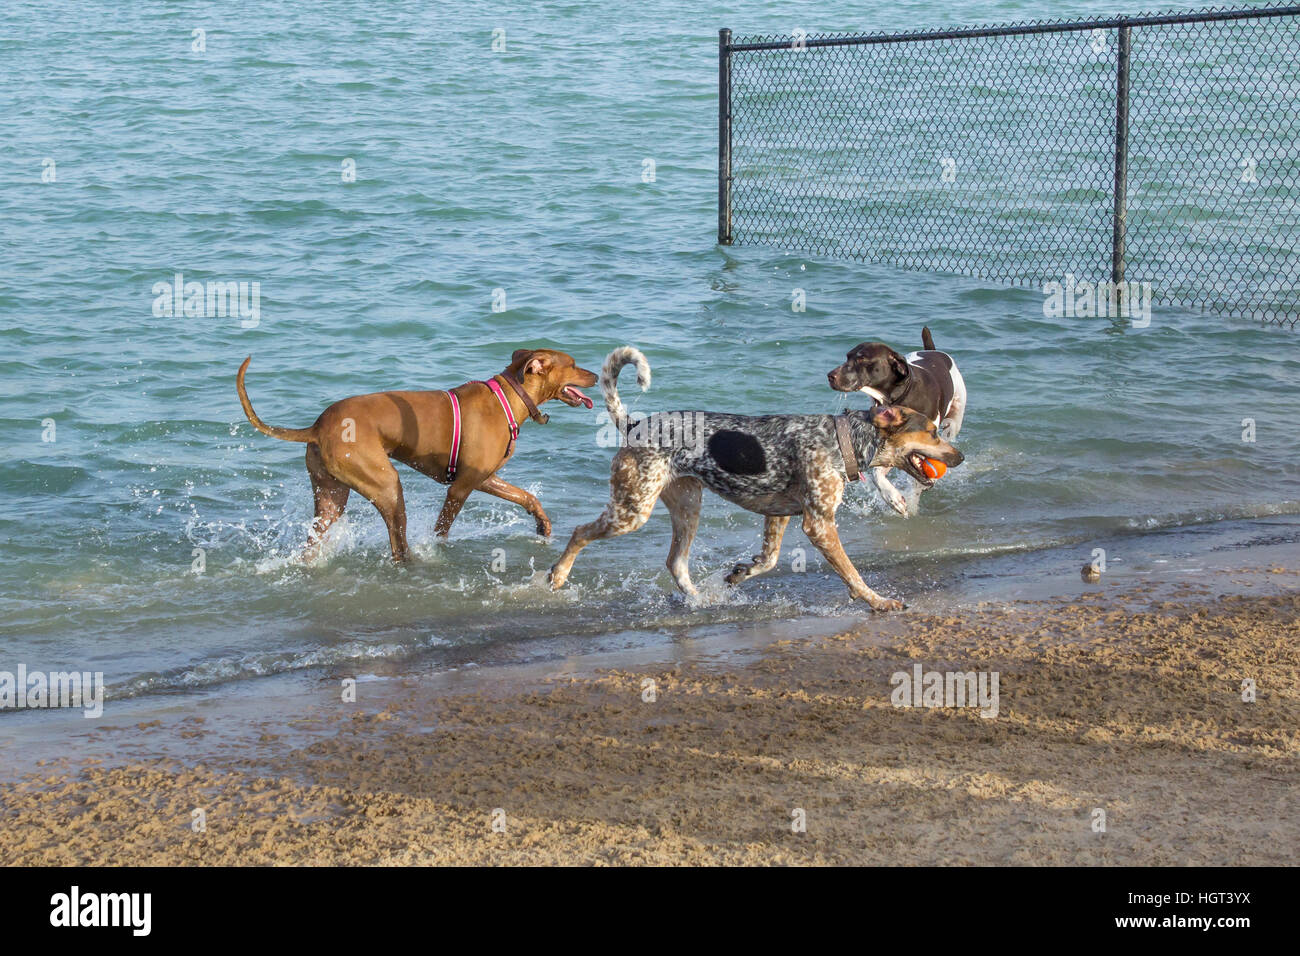 Dog park companions in a retention pond, two mutts observing a hound return the ball in a watery game of fetch. Stock Photo